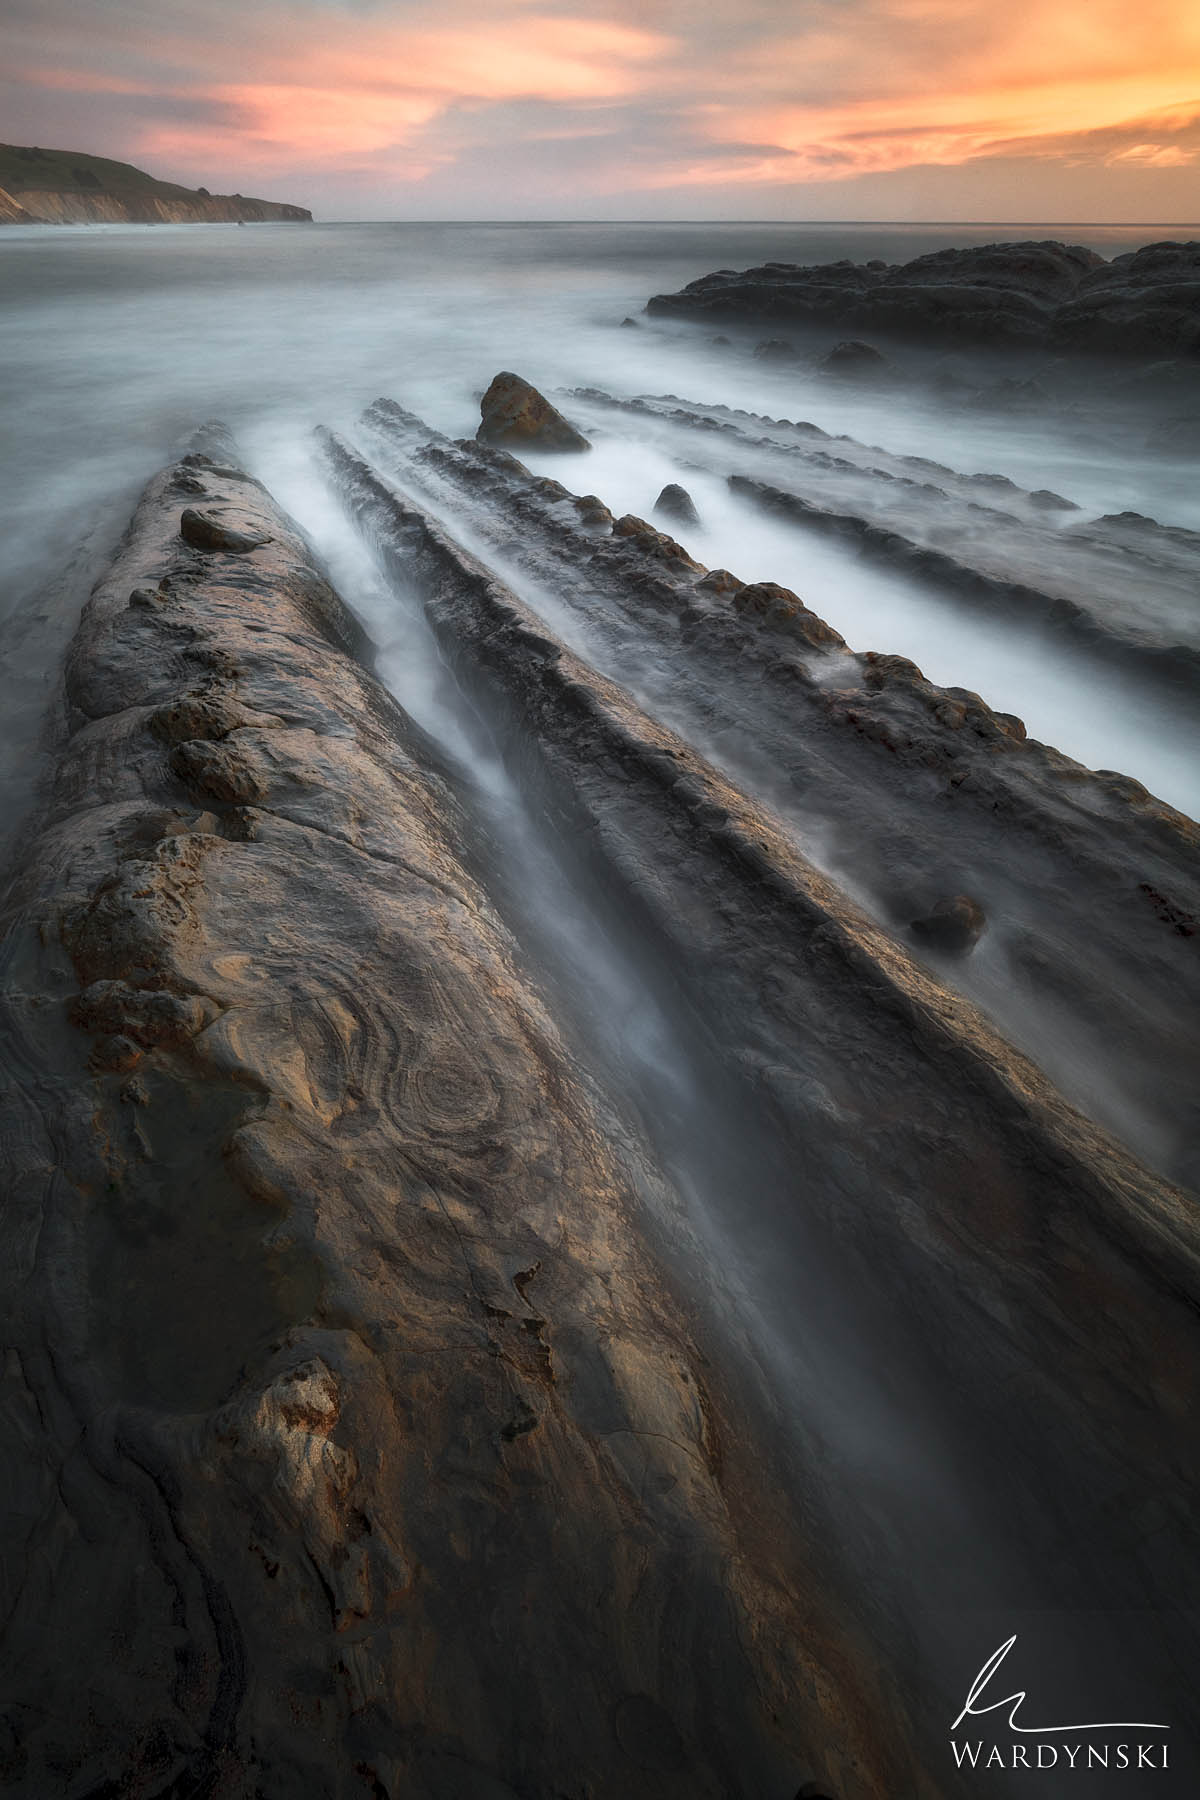 Fine Art Print | Limited Edition of 25  The Northern California coast is loaded with incredible hidden beaches and spectacular...